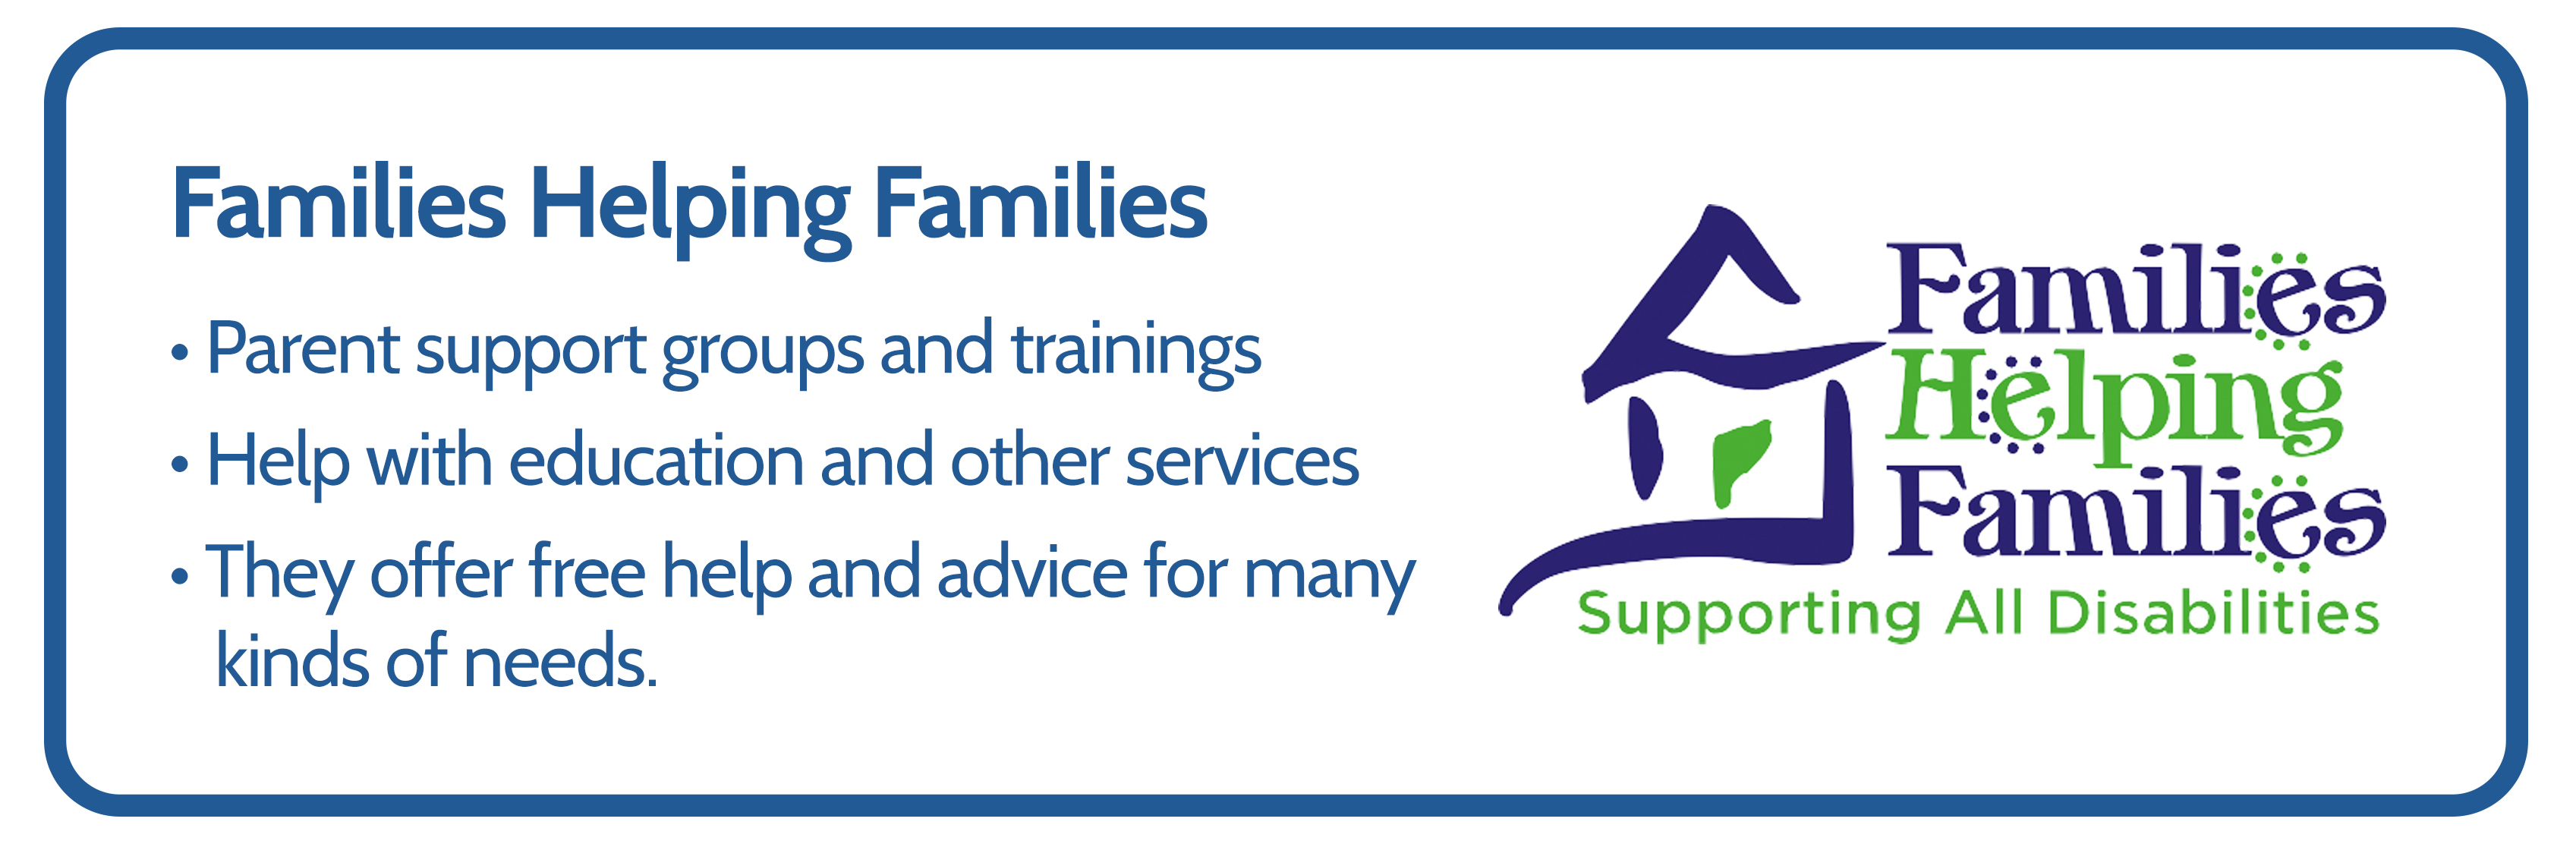 Image of Families helping Families logo beside the text: Parent support groups and trainings, help with education and other services, they offer free help and advice for many kinds of needs.